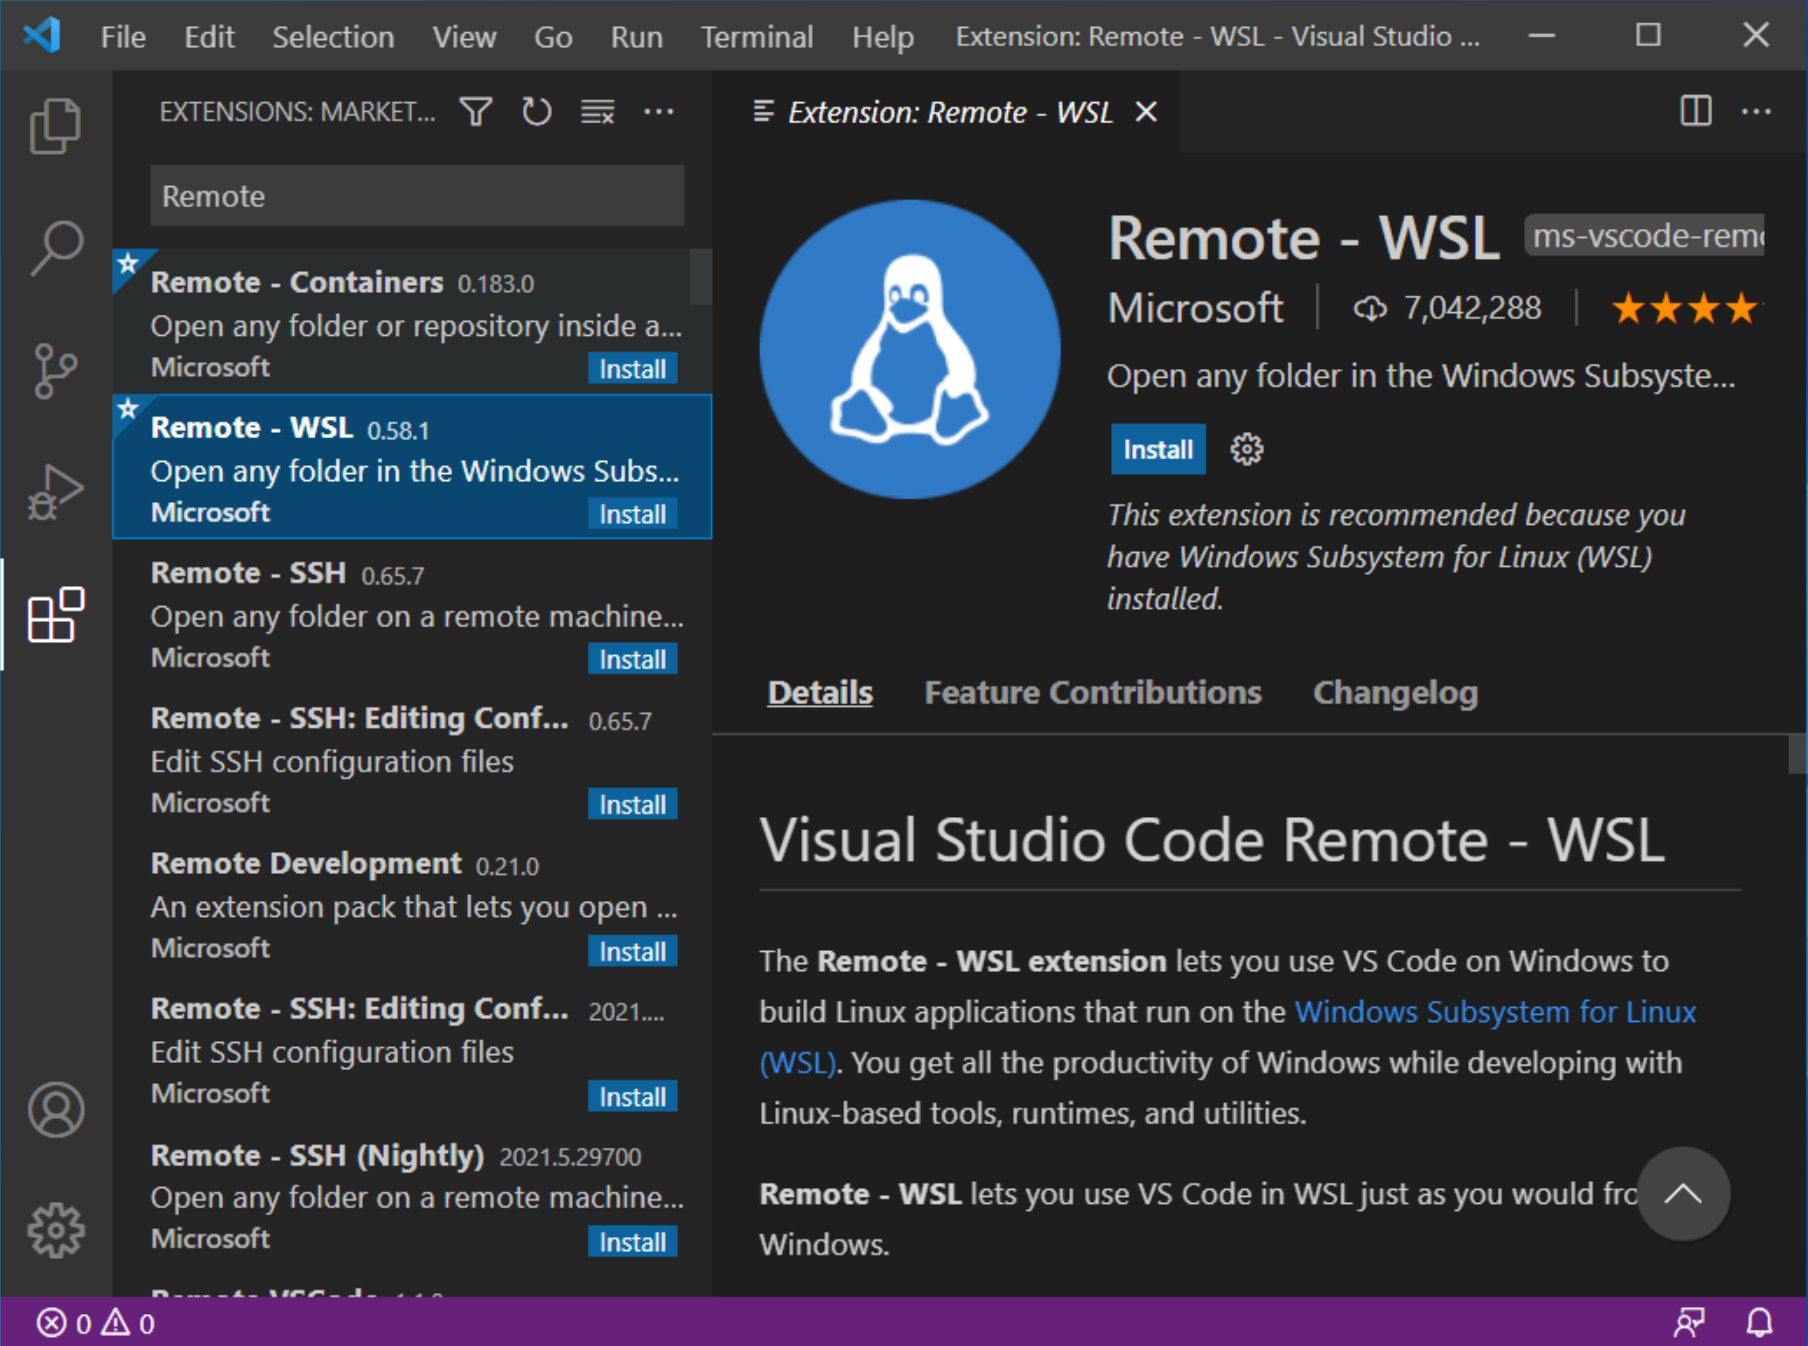 Open VSCode, go to Extensions and search for Remote. Install the Remote - WSL Extension